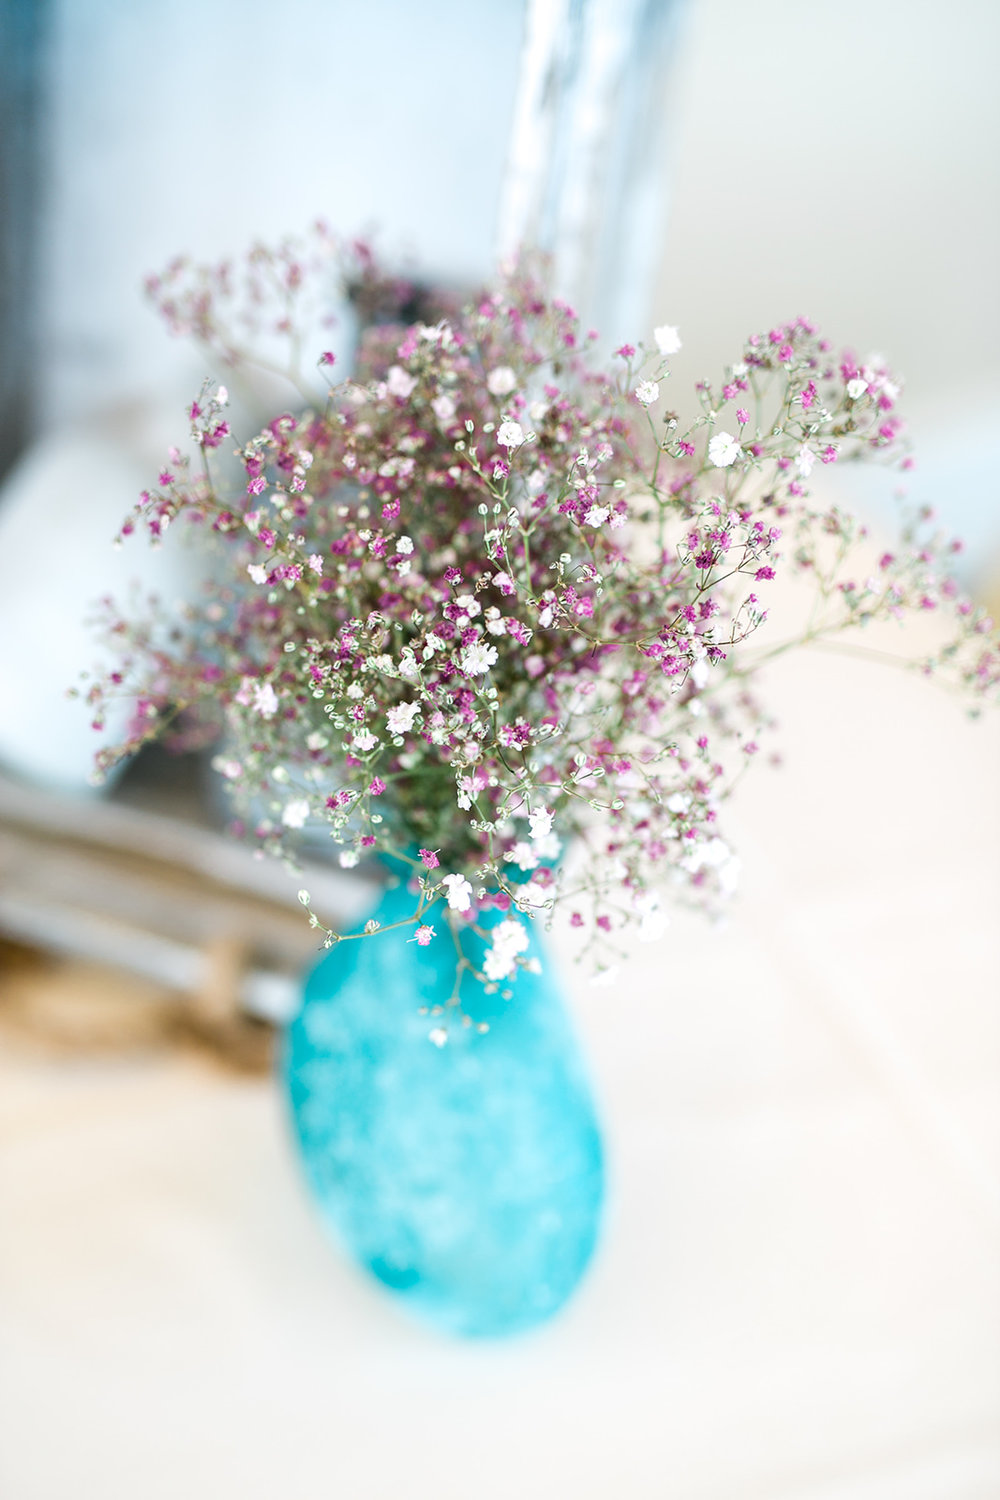 Blue vases with purple flowers - Pearl Weddings & Events